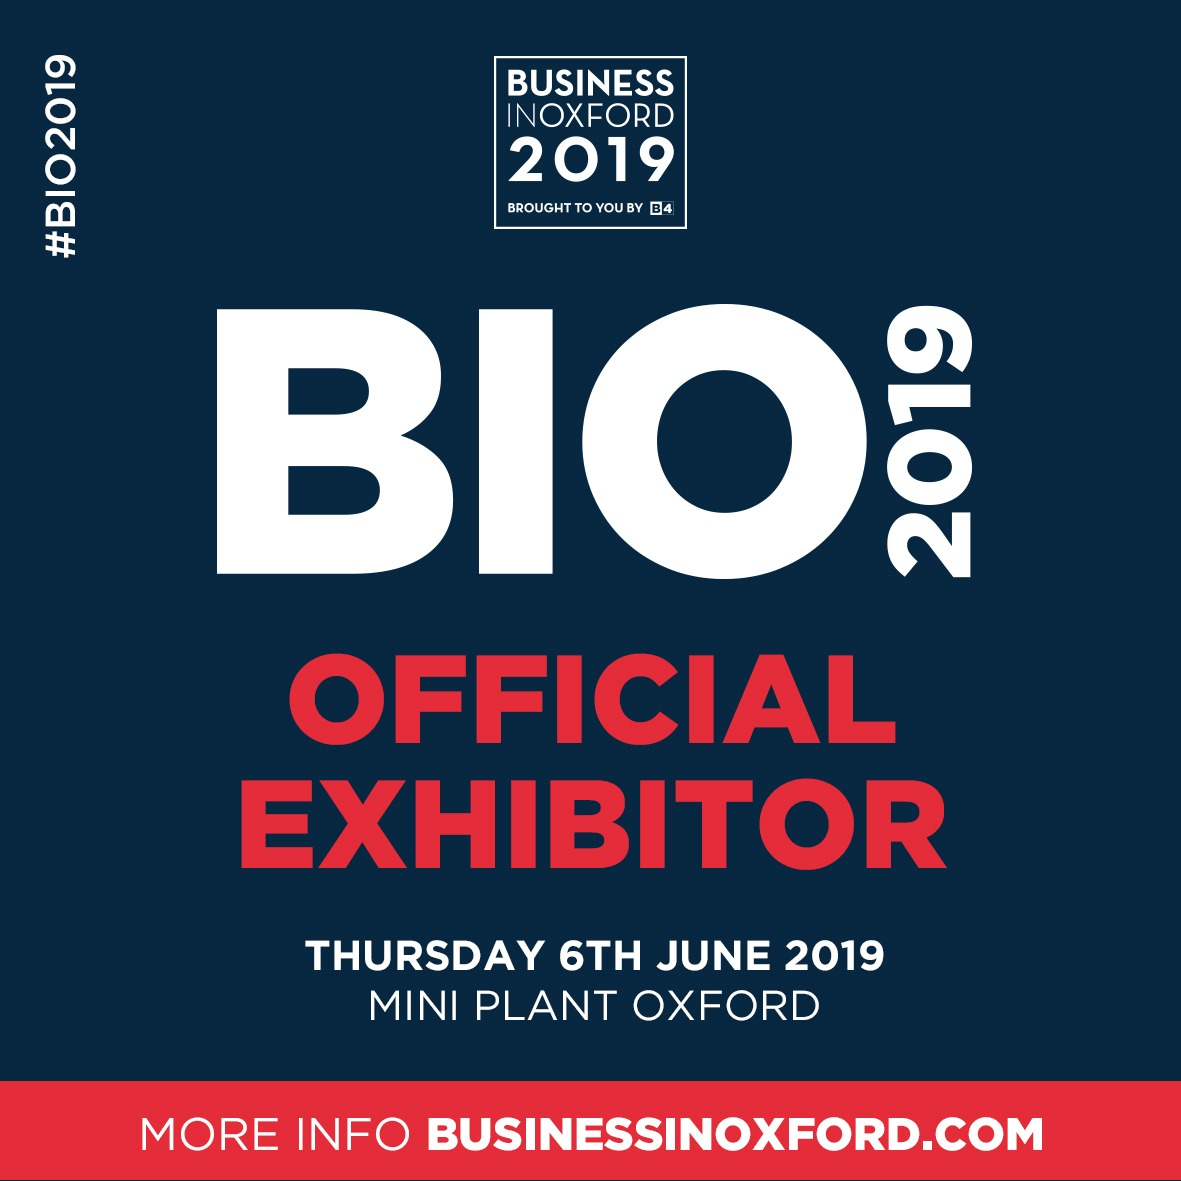 Whitley Stimpson to appear at Business In Oxford 2019